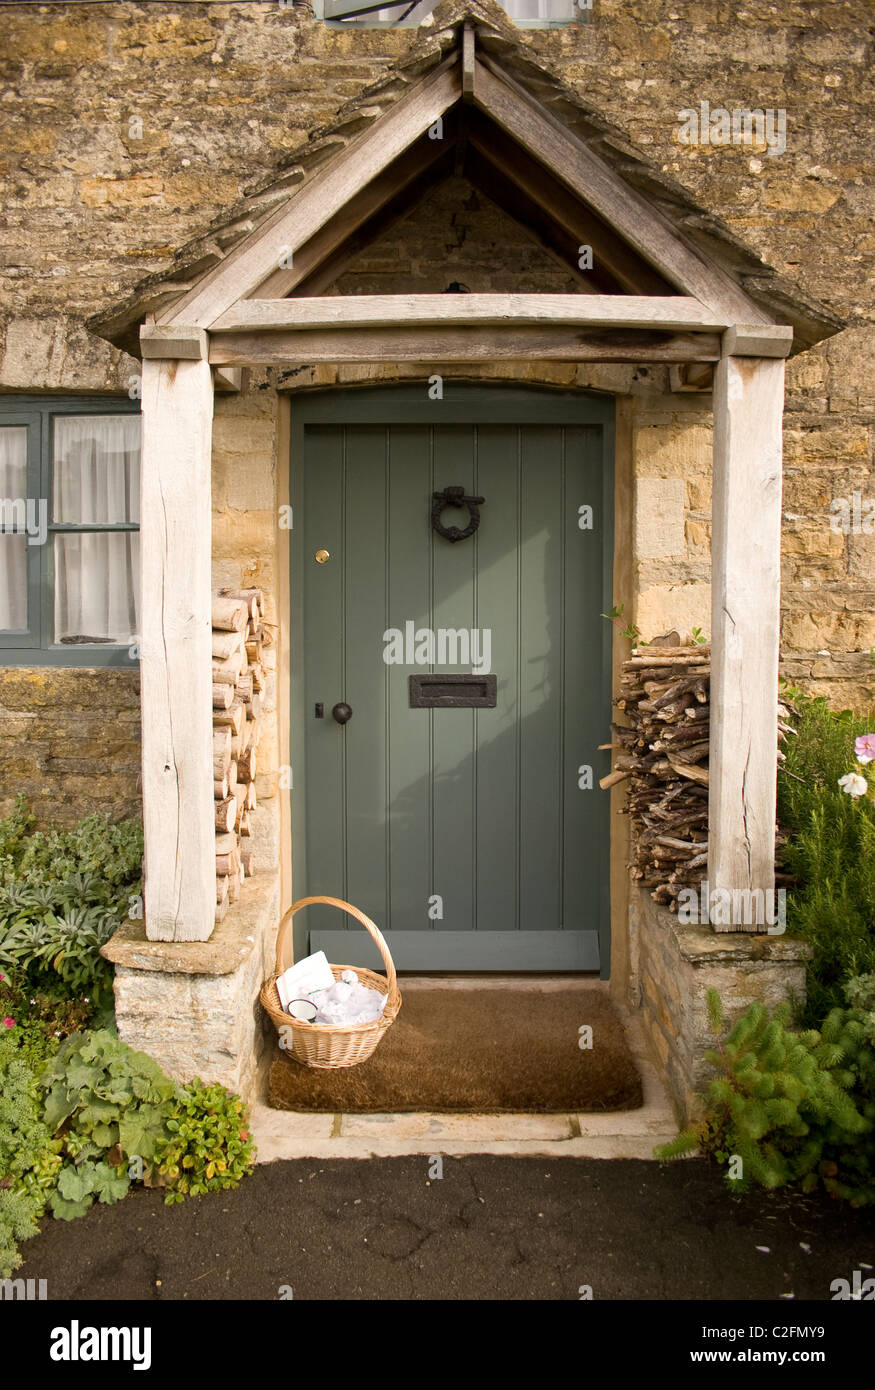 Stock Photo - stone cotswold wood wall door porch gable side structure flat mortar blocks carved masonry hand crafted weathered scratches step : door porch - Pezcame.Com